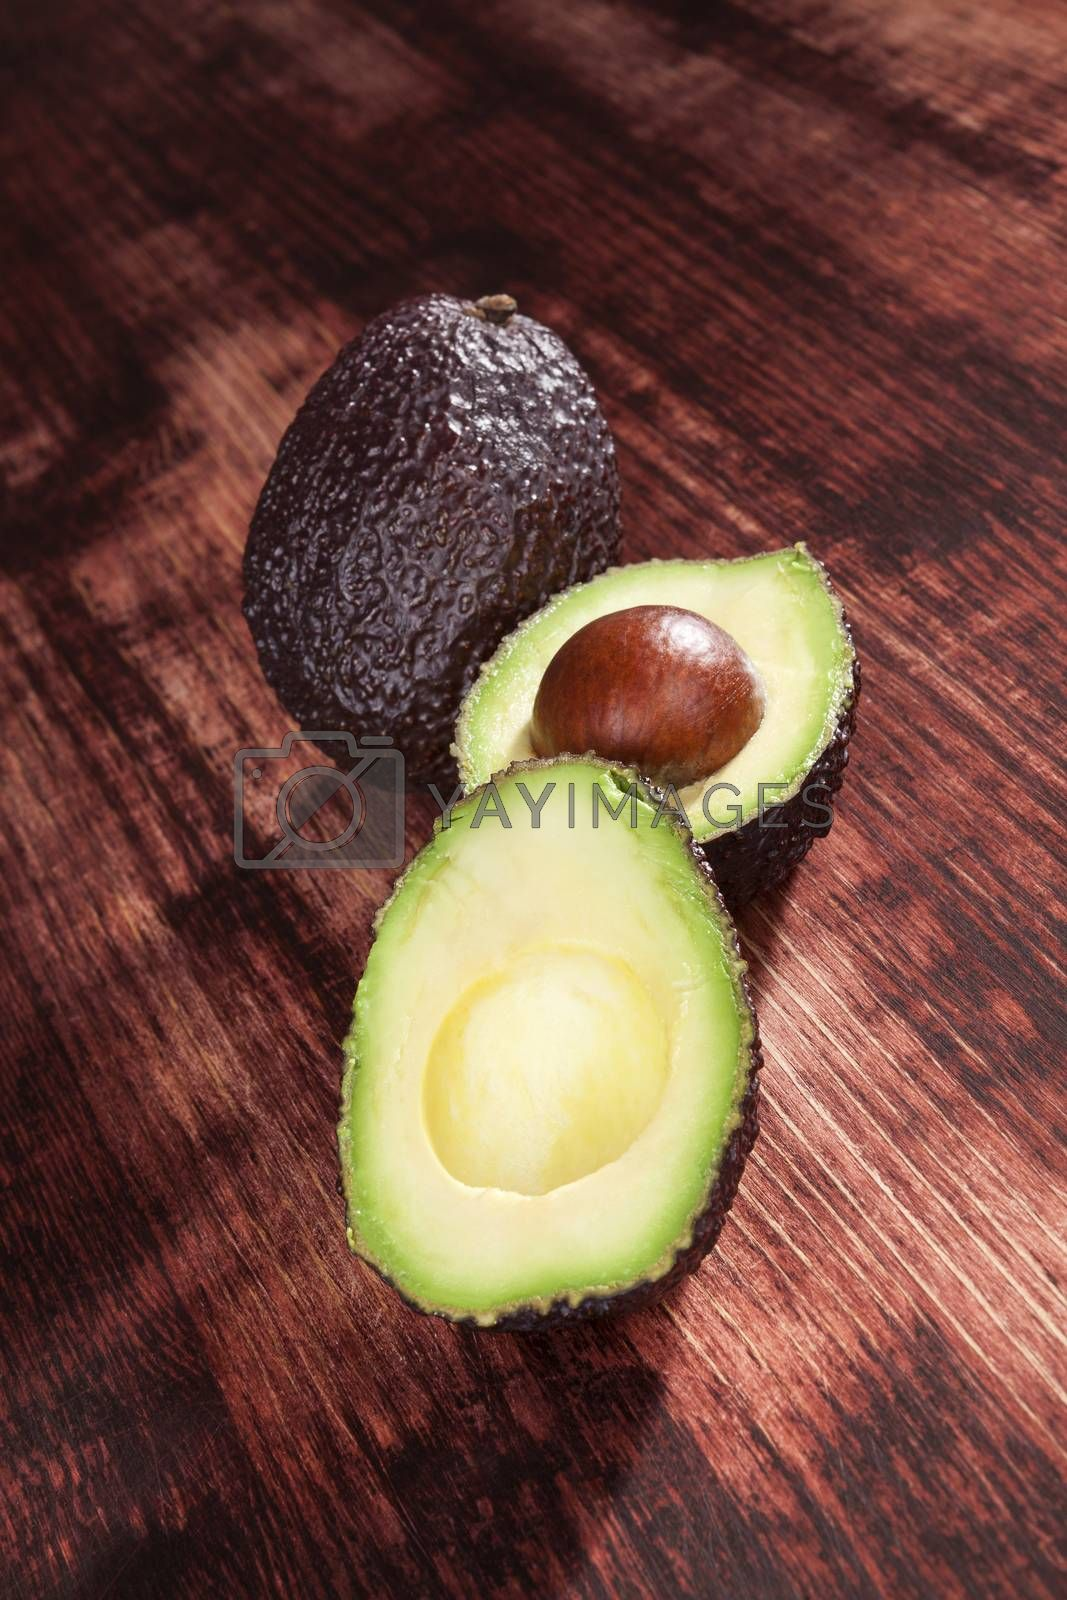 Perfect ripe cut avocados on wooden background. Culinary healthy eating.